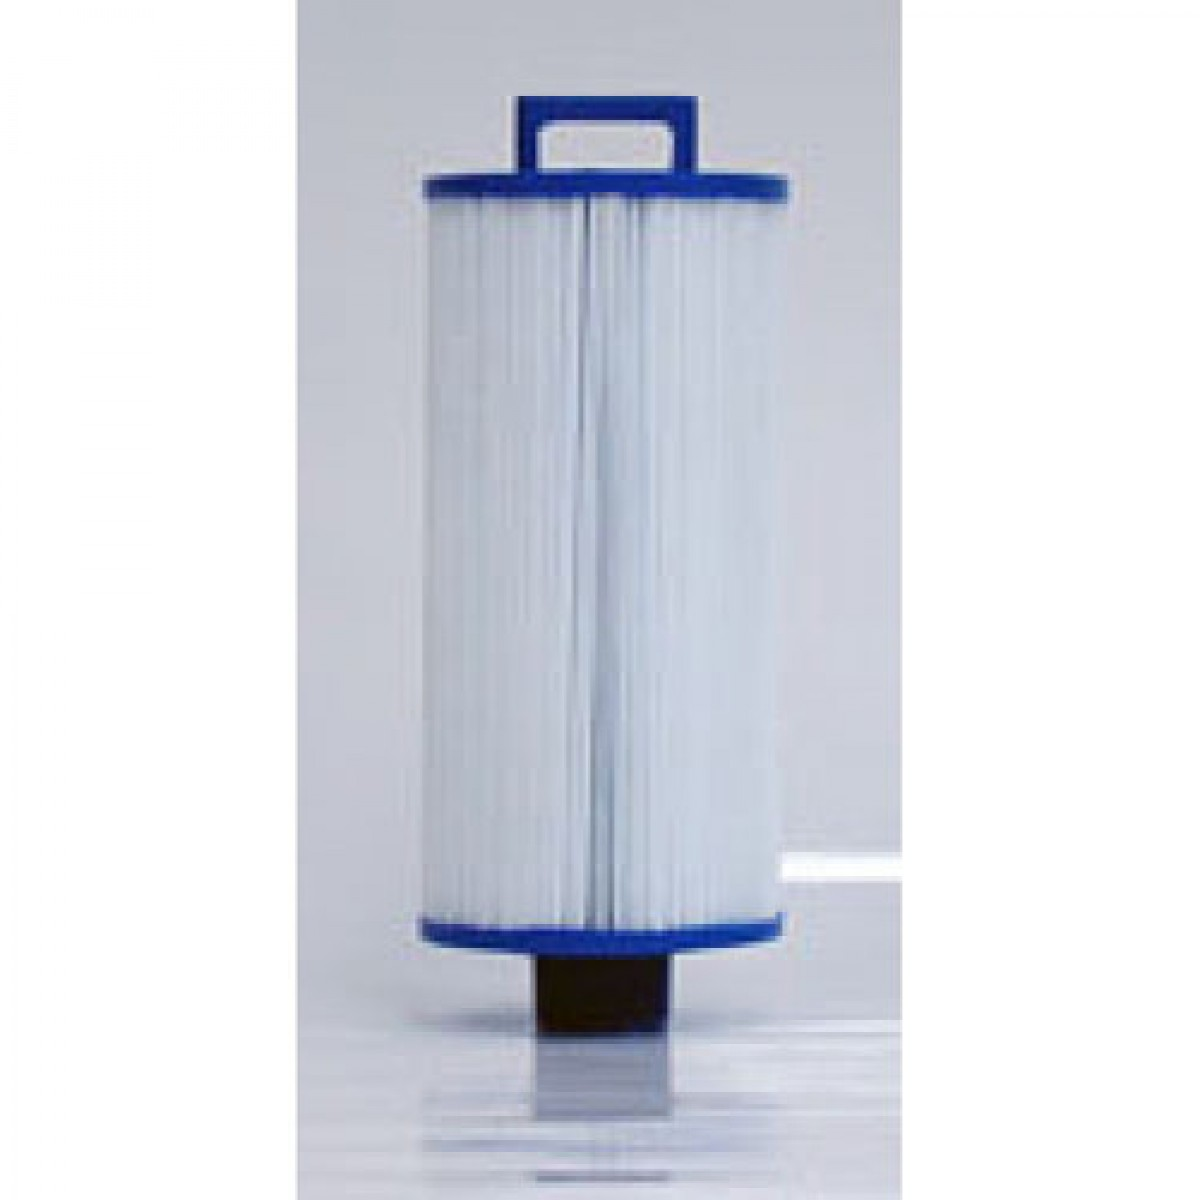 Pleatco pgs25 pool and spa replacement filter for Obi filtersand pool